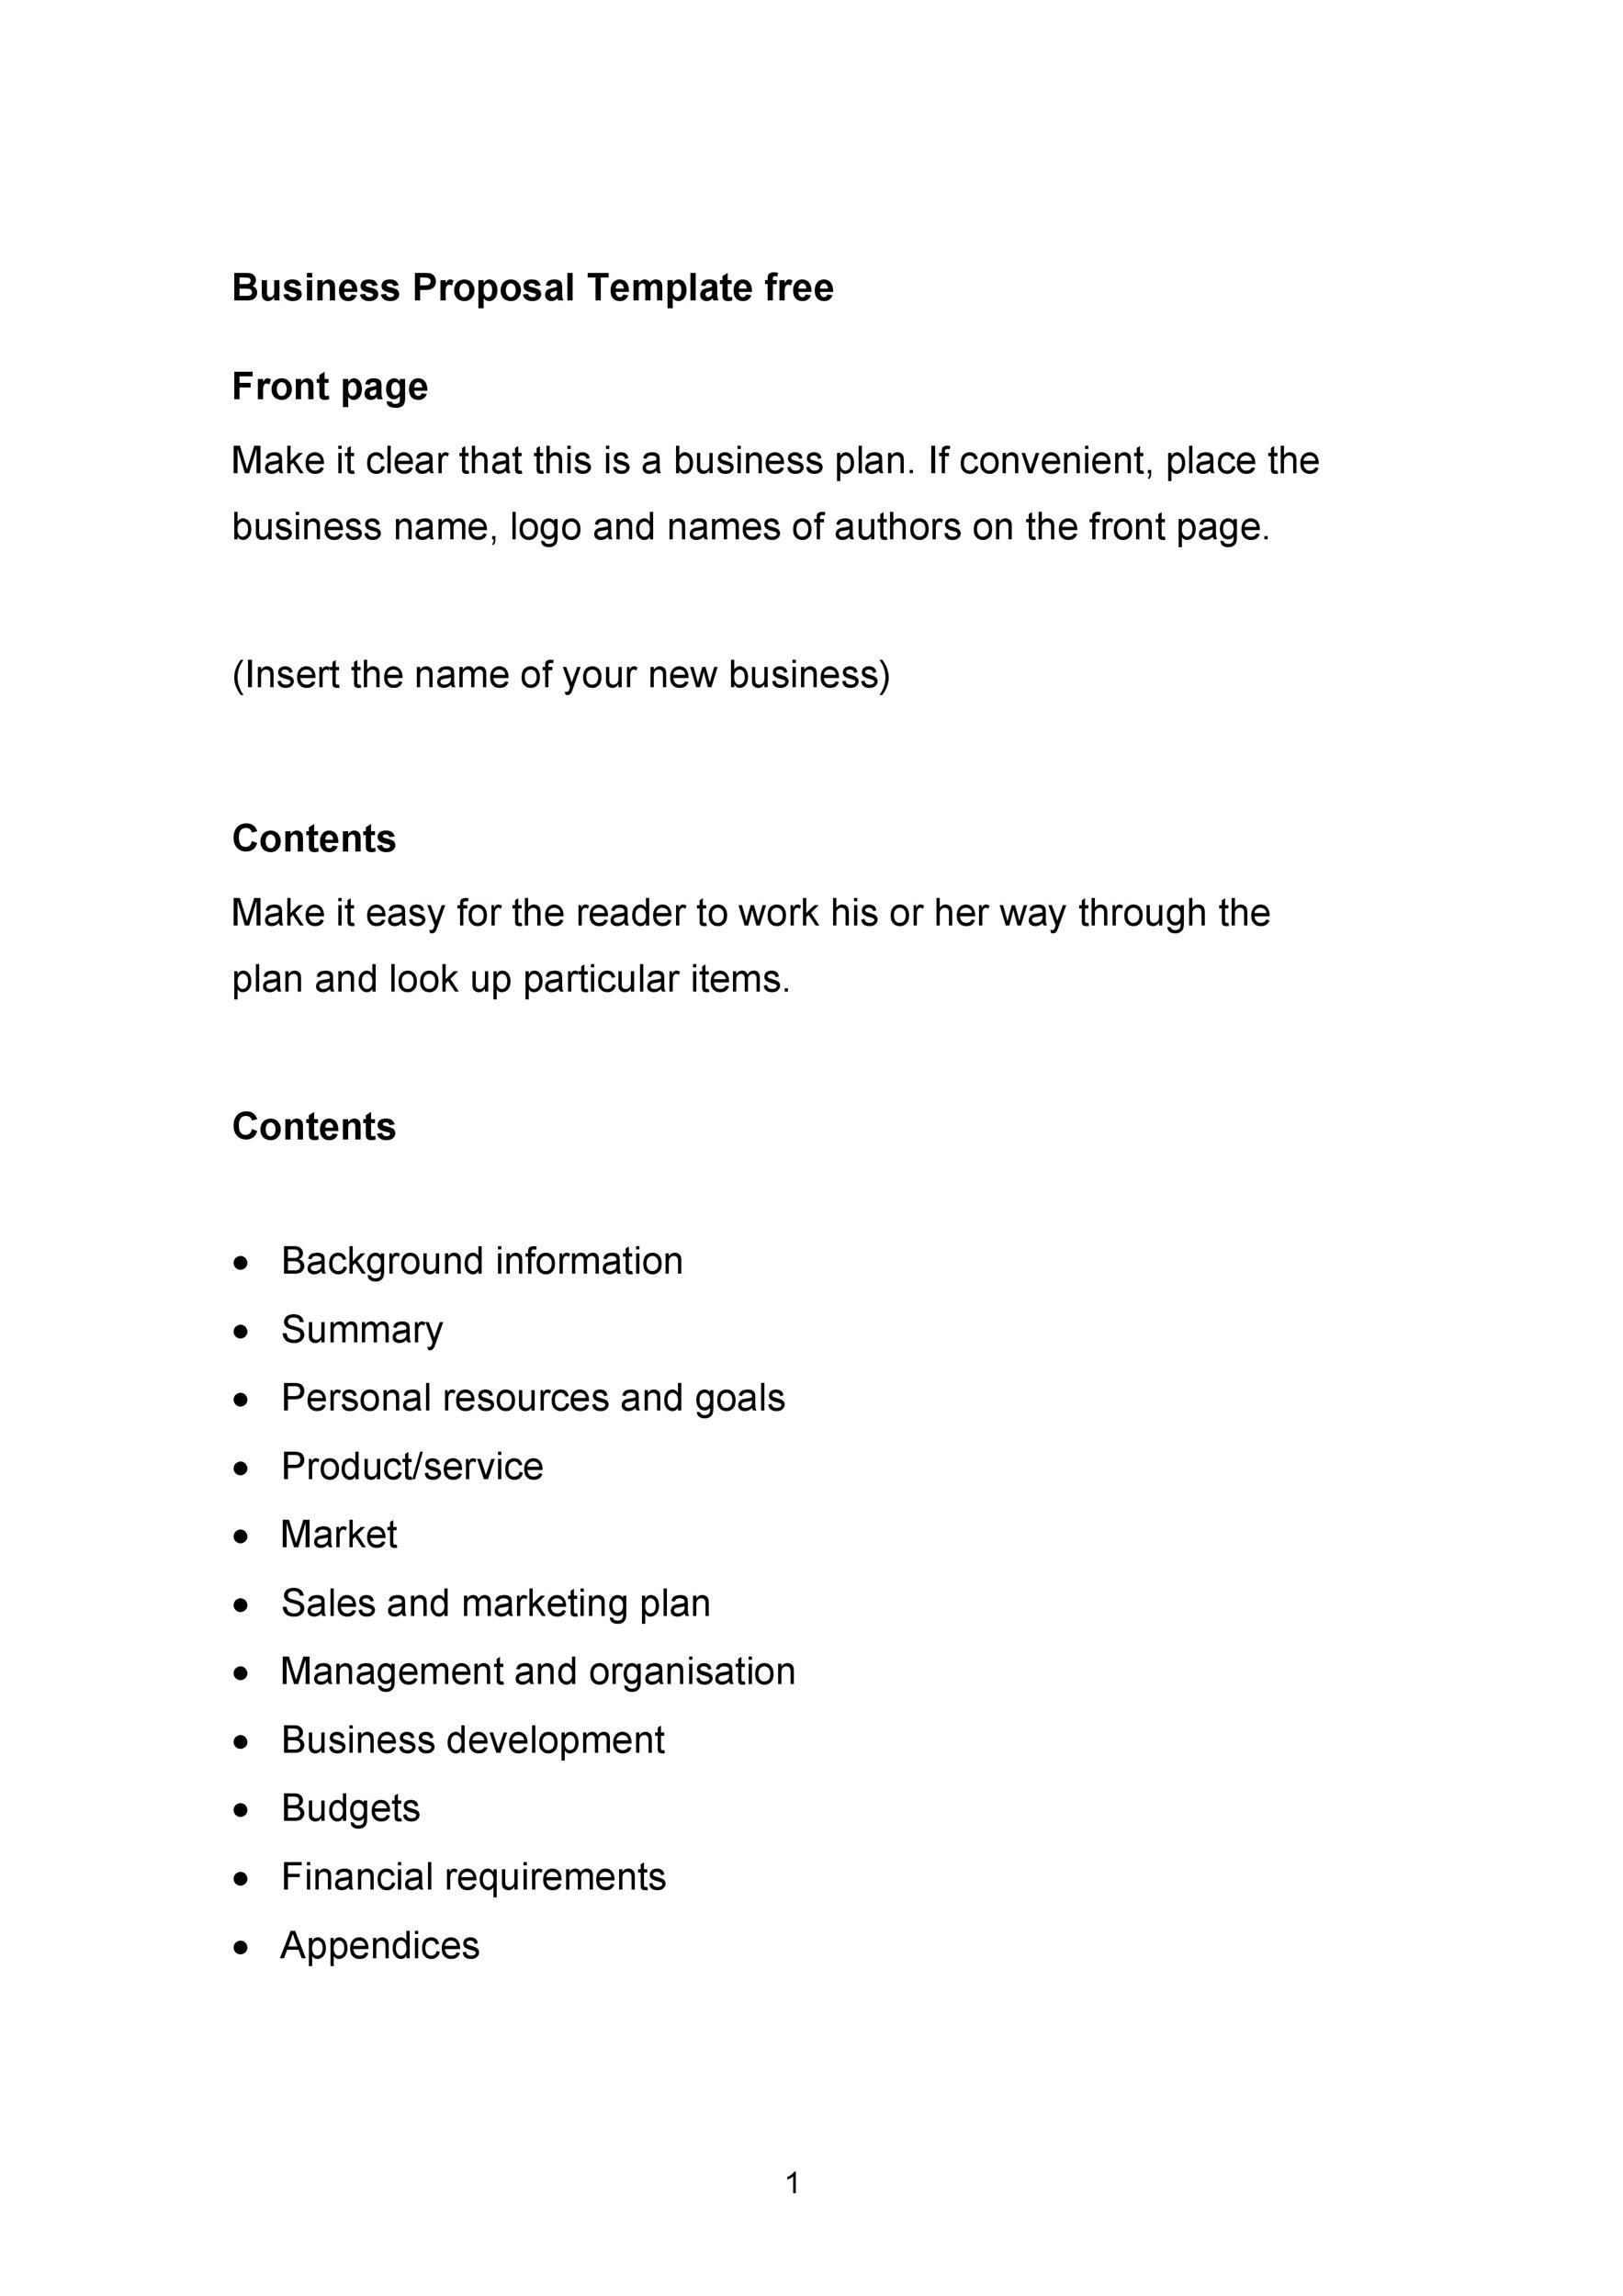 Business Proposal Business Proposal Template   Business